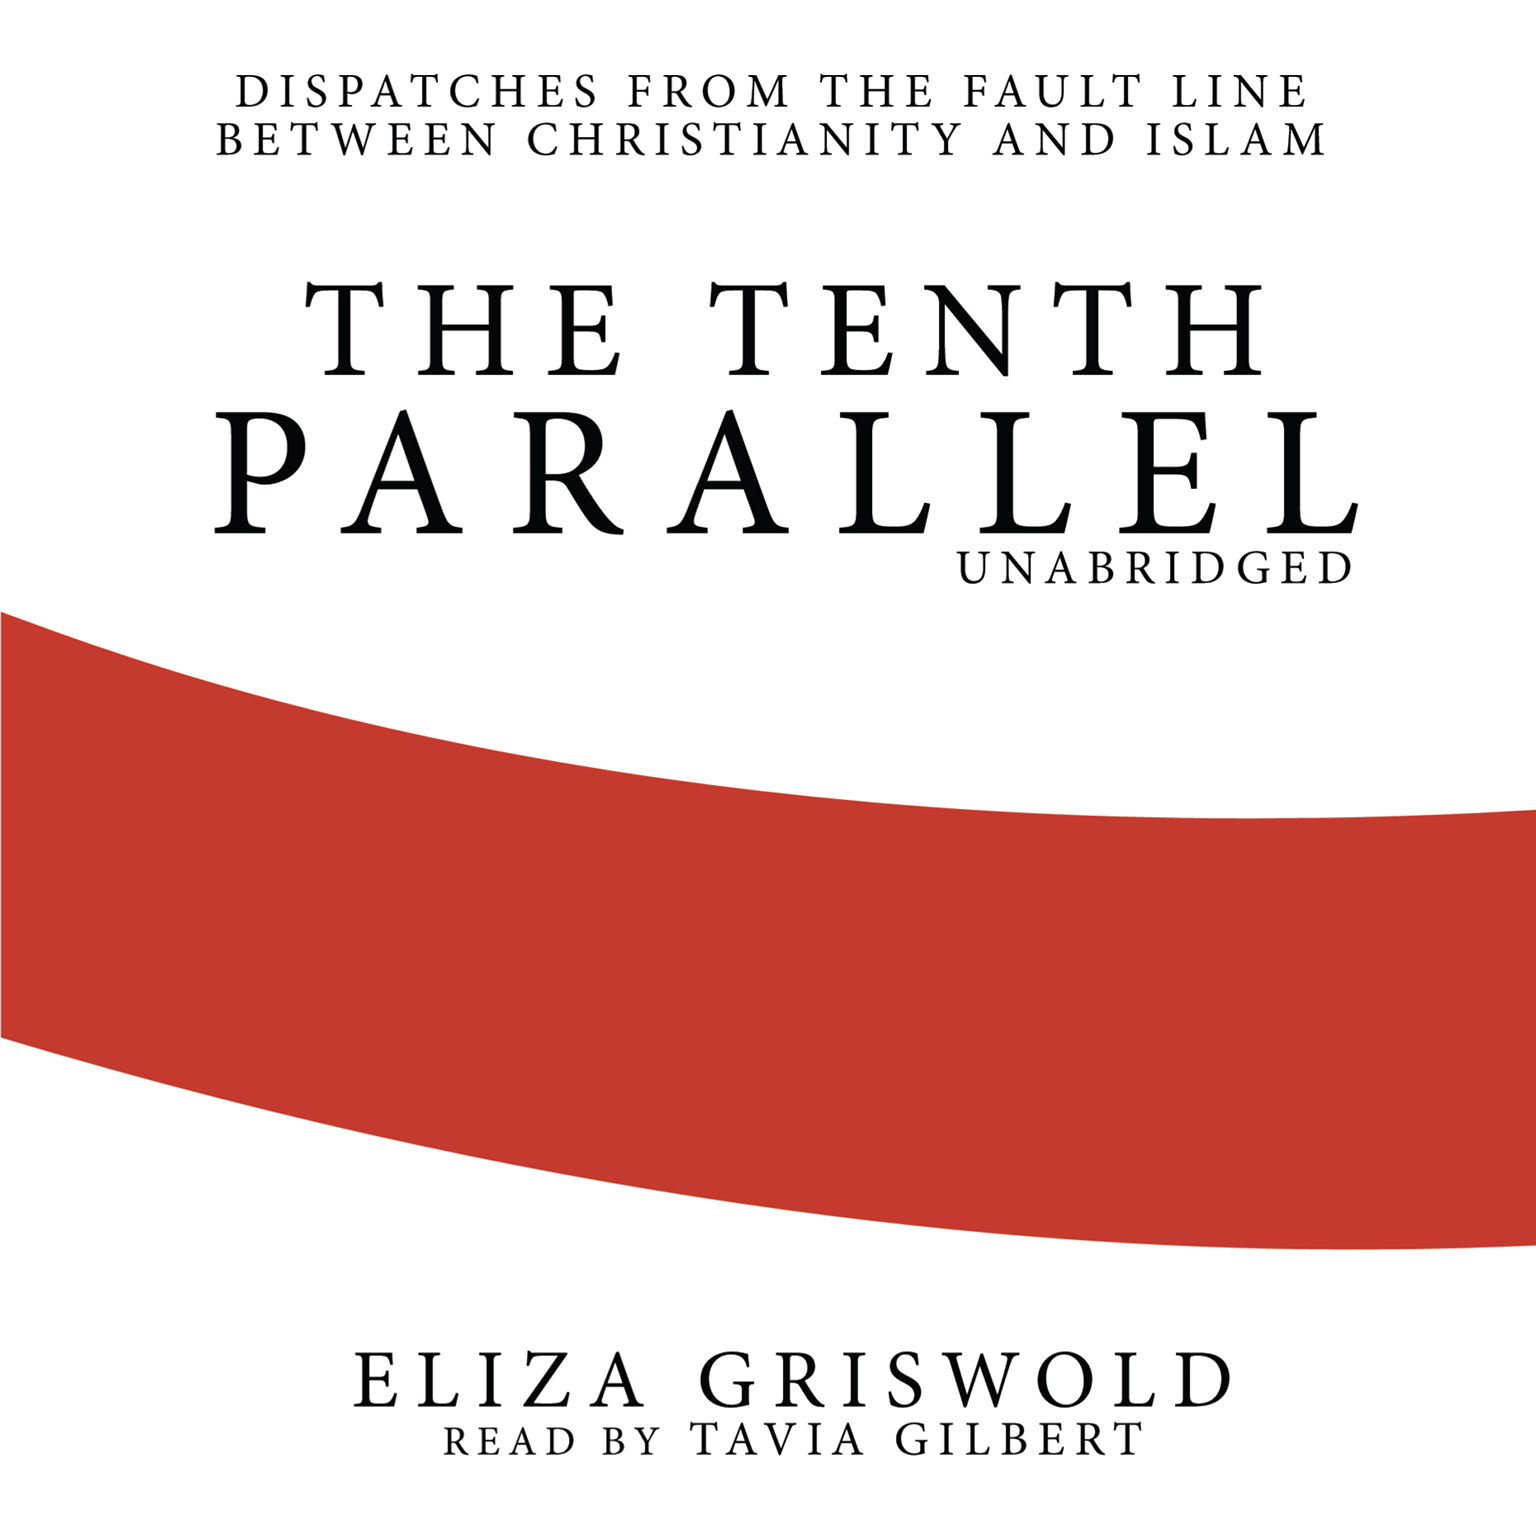 Printable The Tenth Parallel: Dispatches from the Fault Line between Christianity and Islam Audiobook Cover Art